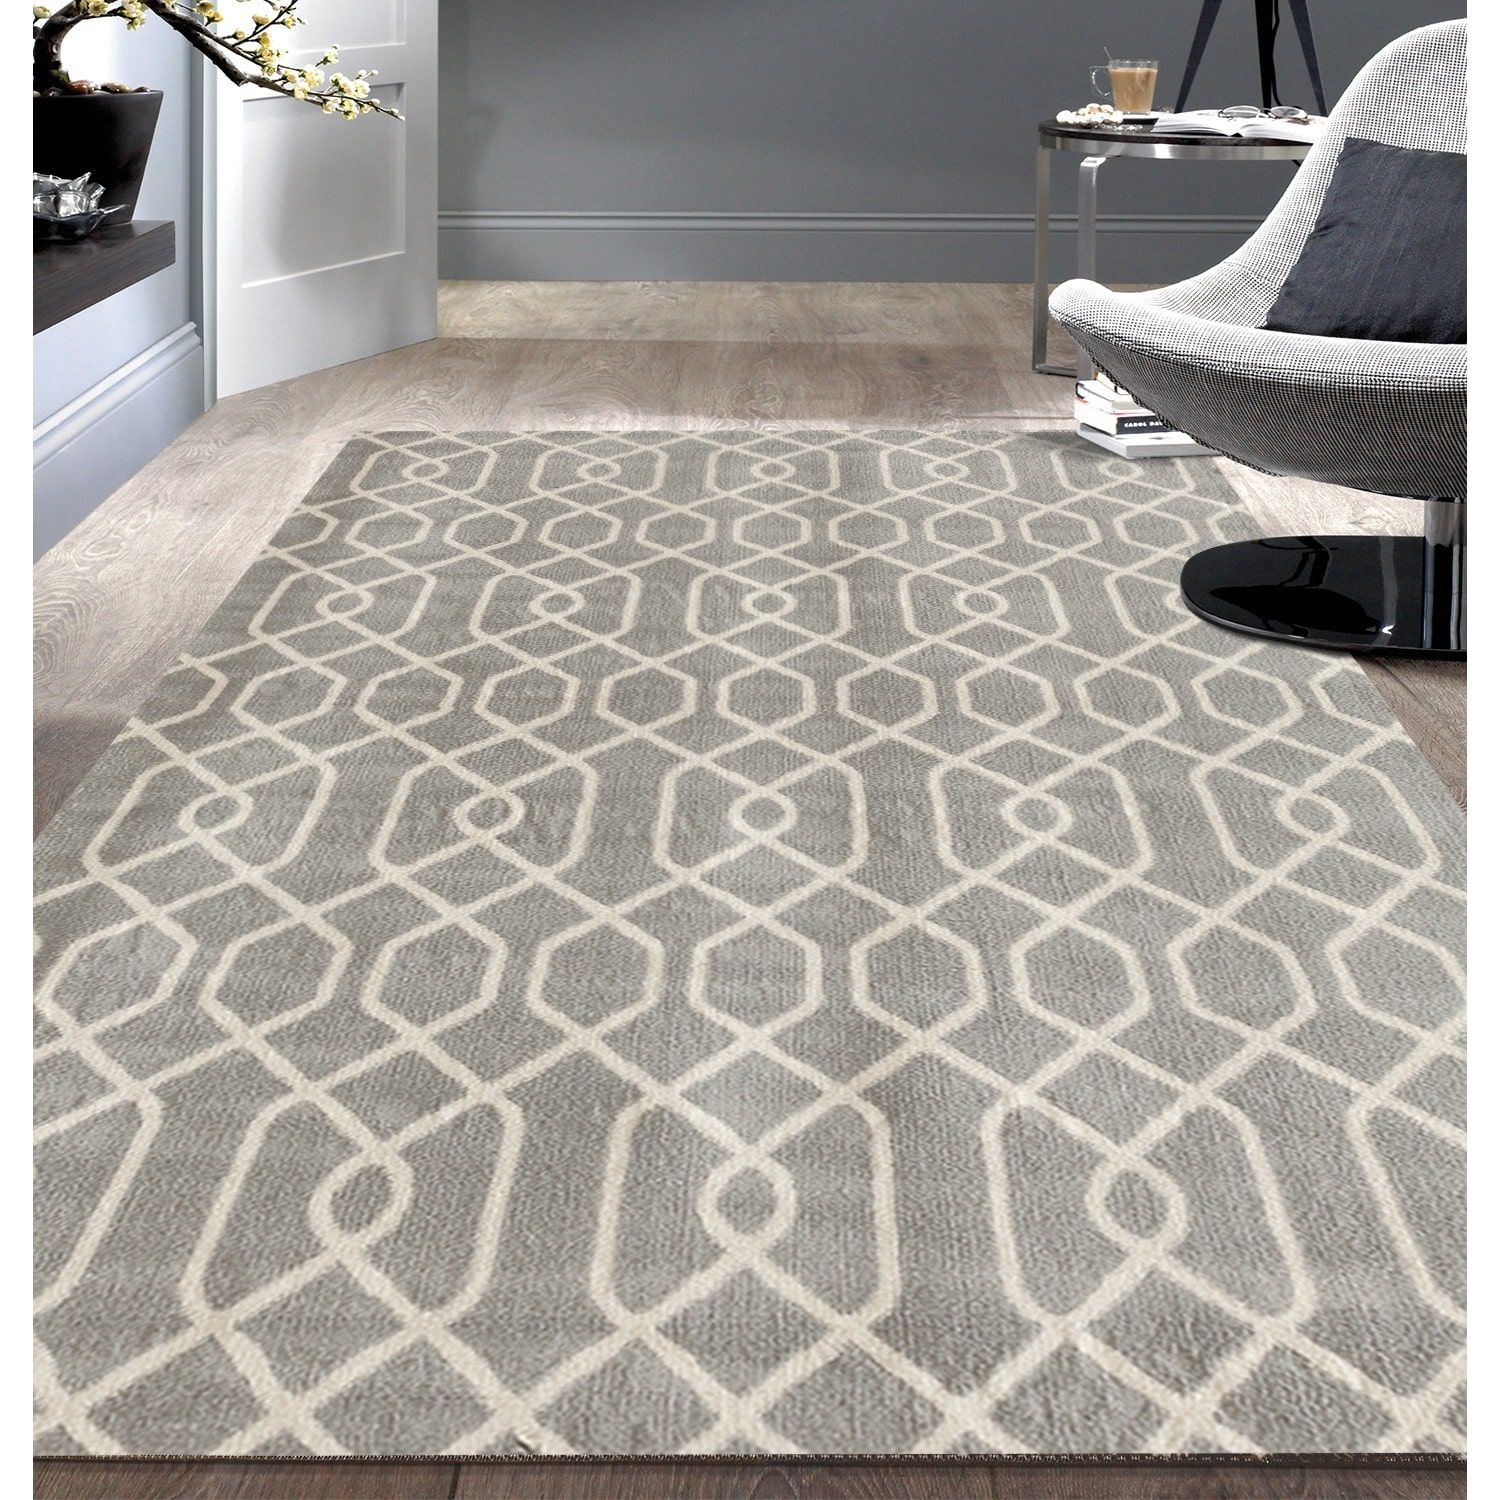 Beige 7x9 10x14 Rugs Sale Use Large Area Rugs To Bring A New